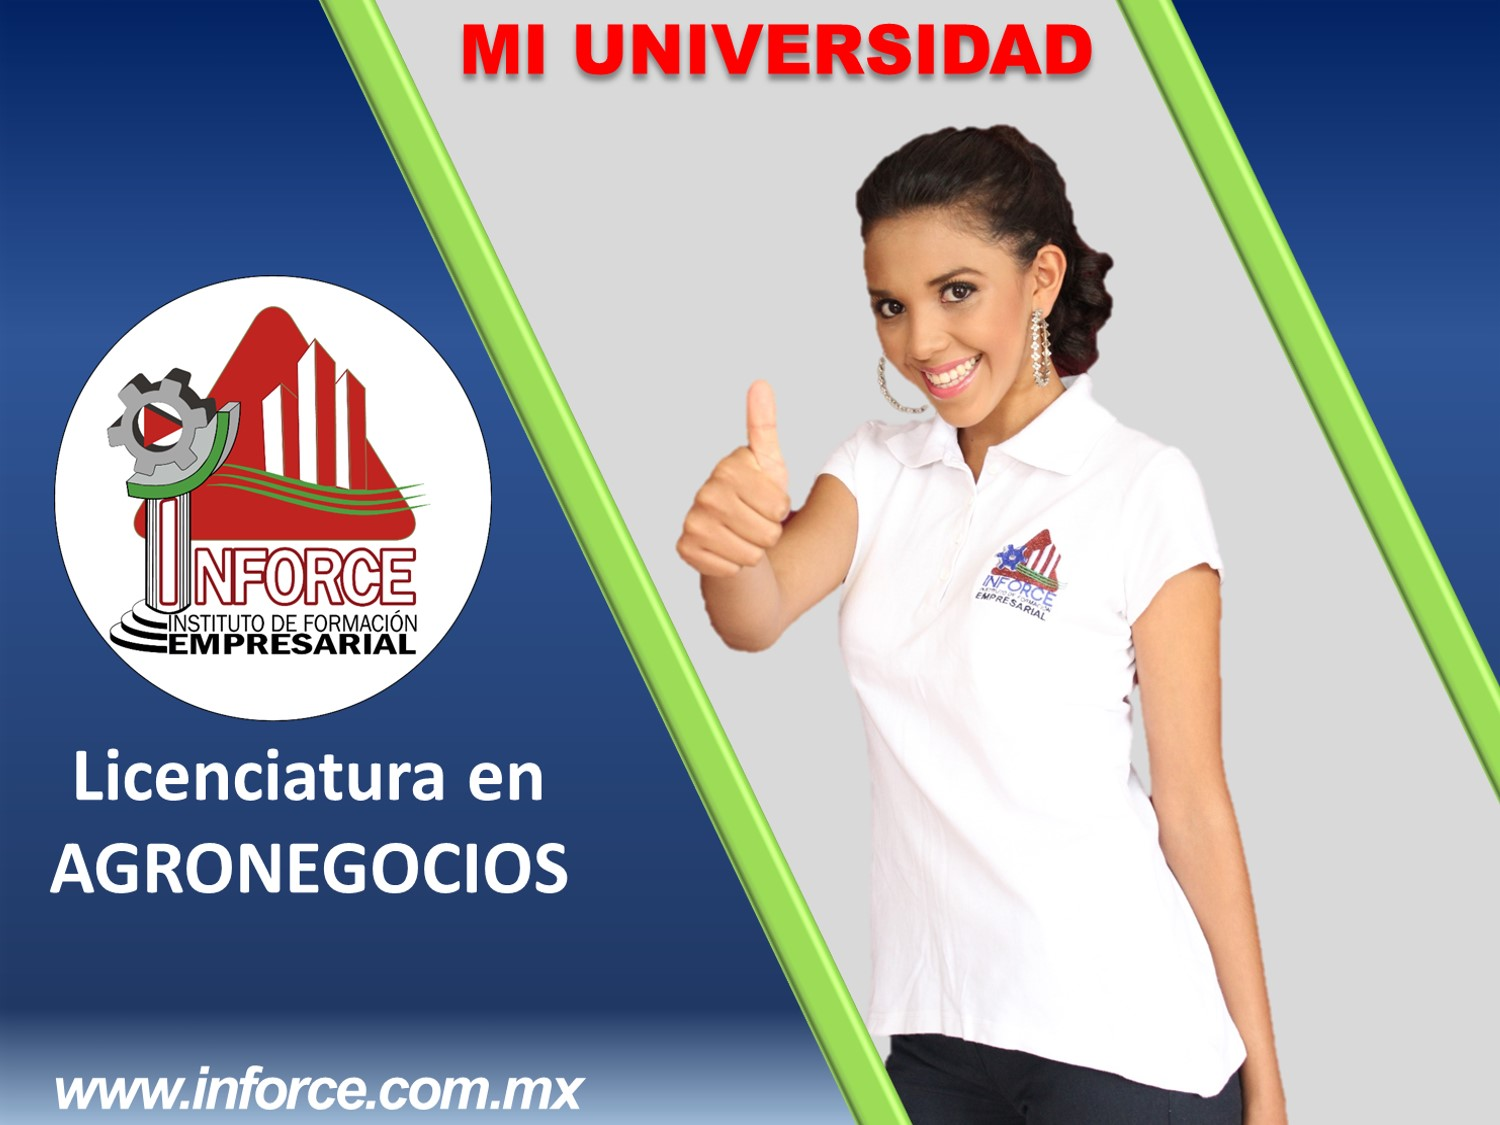 universidad-inforce-06.jpg